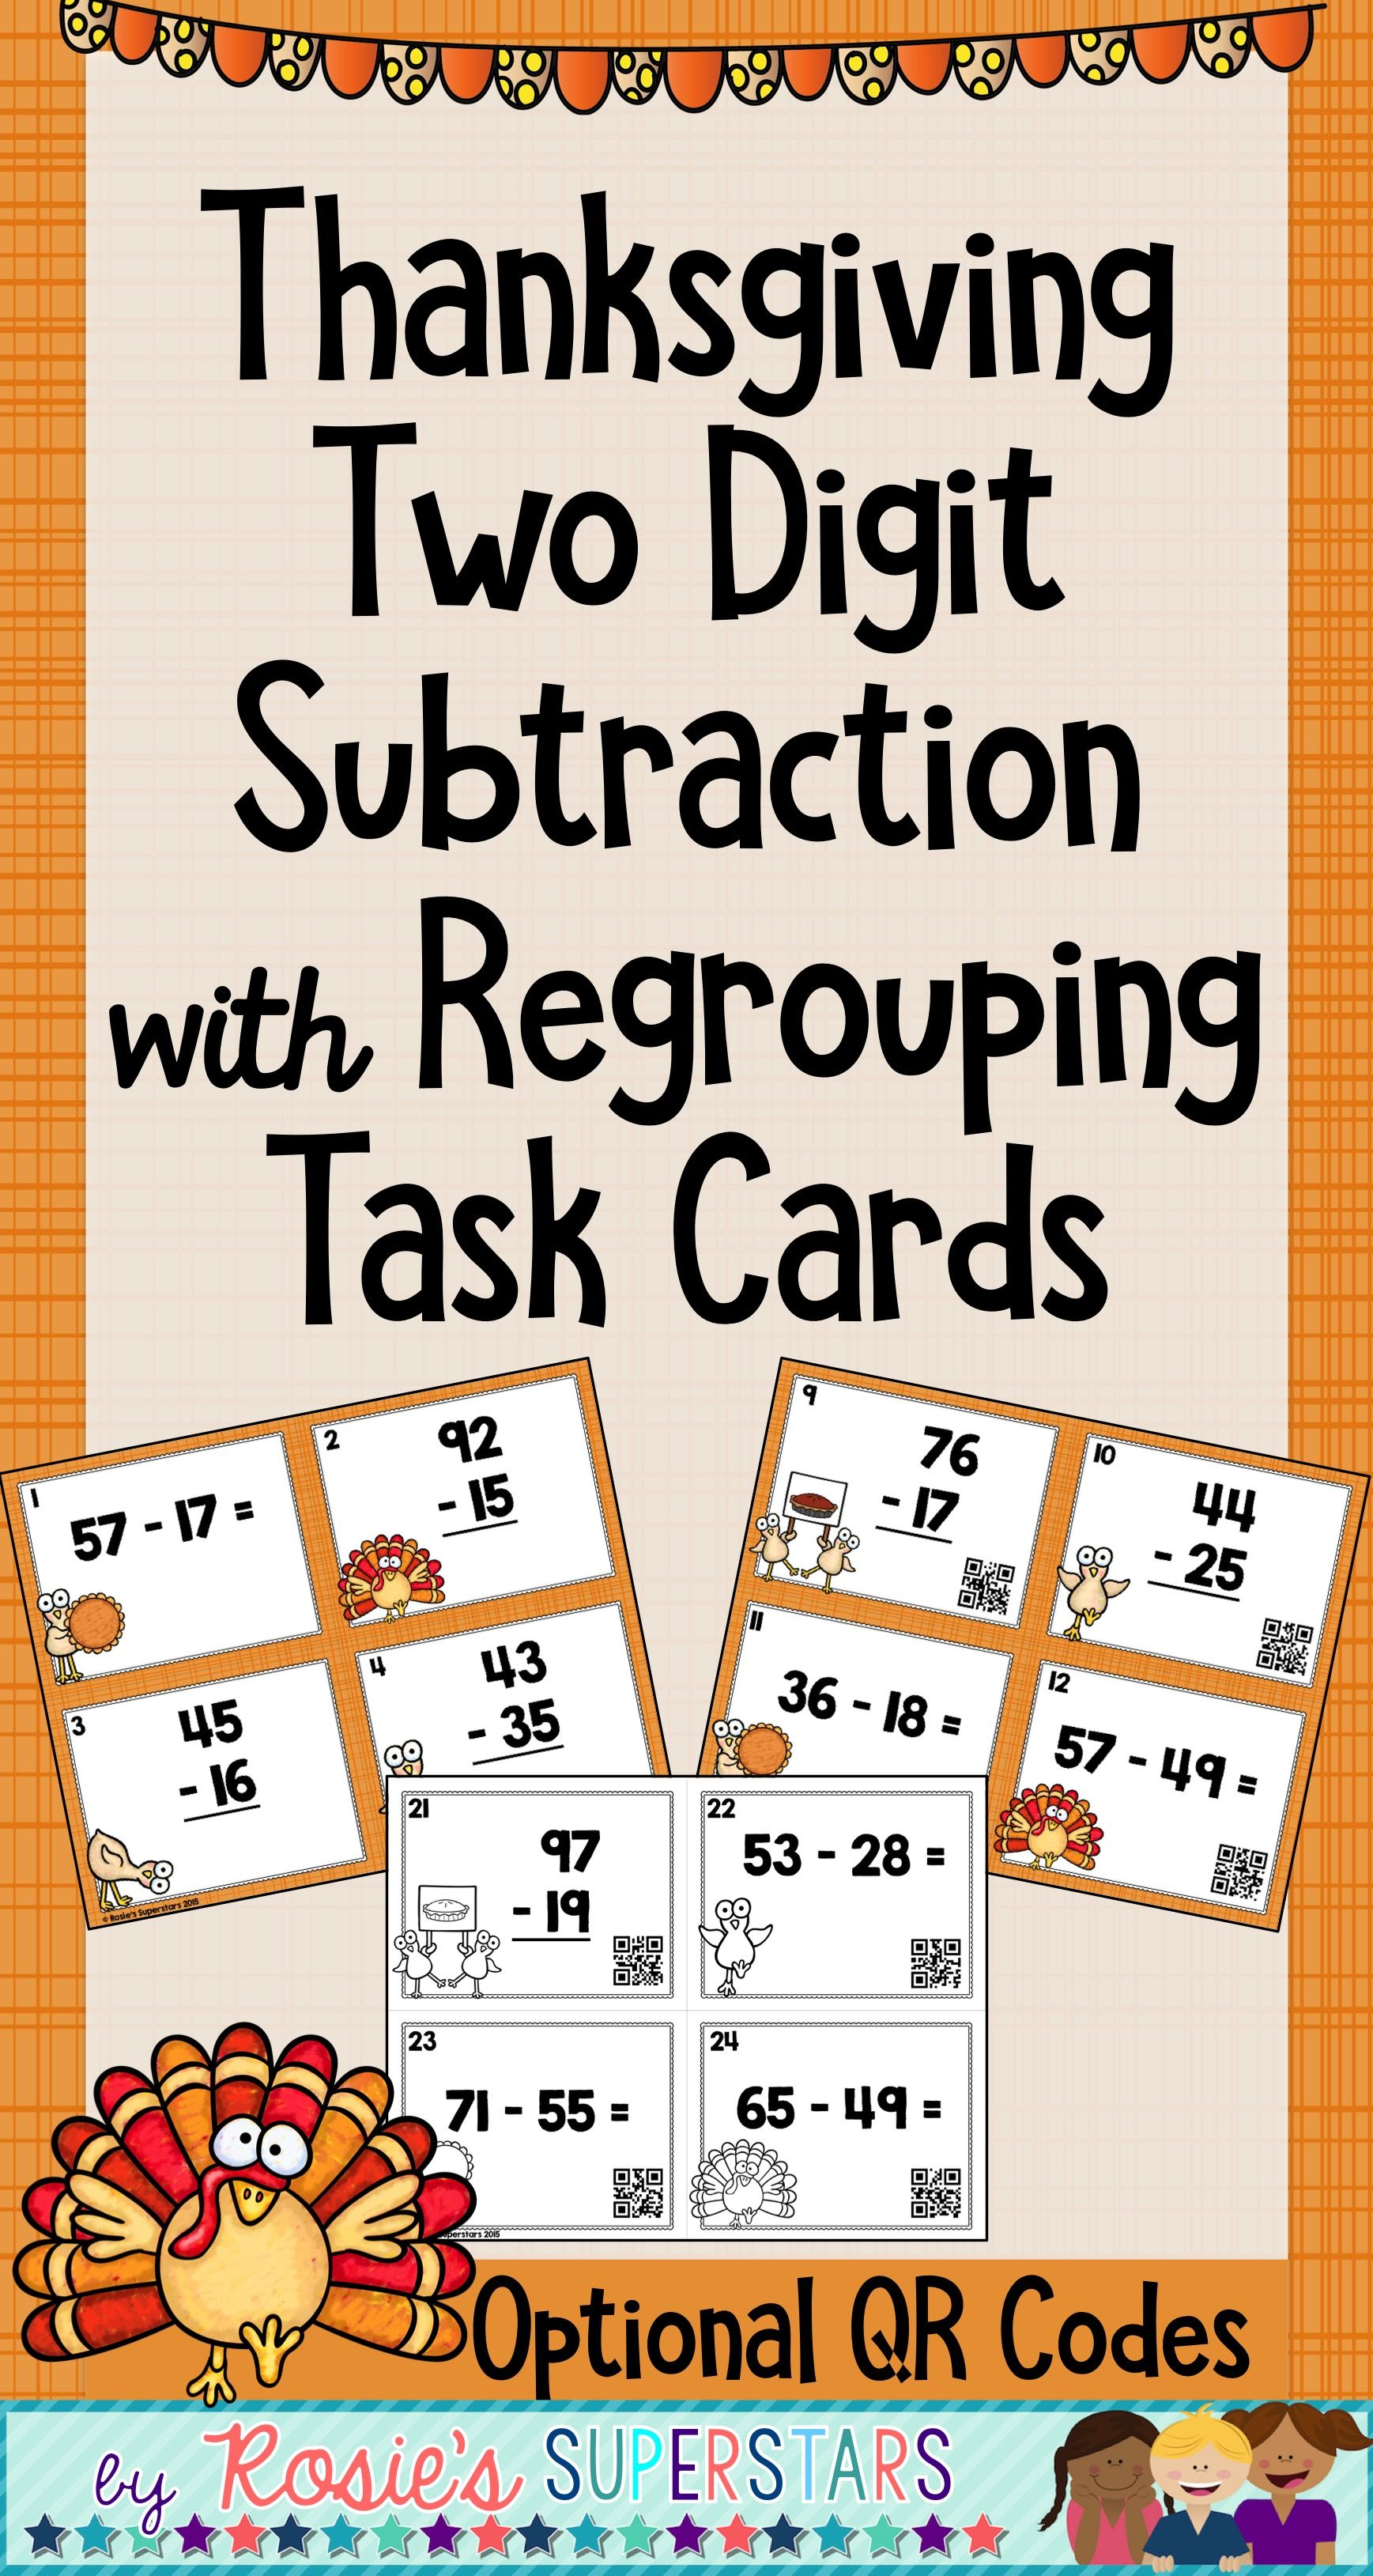 Thanksgiving Two Digit Subtraction With Regrouping Task